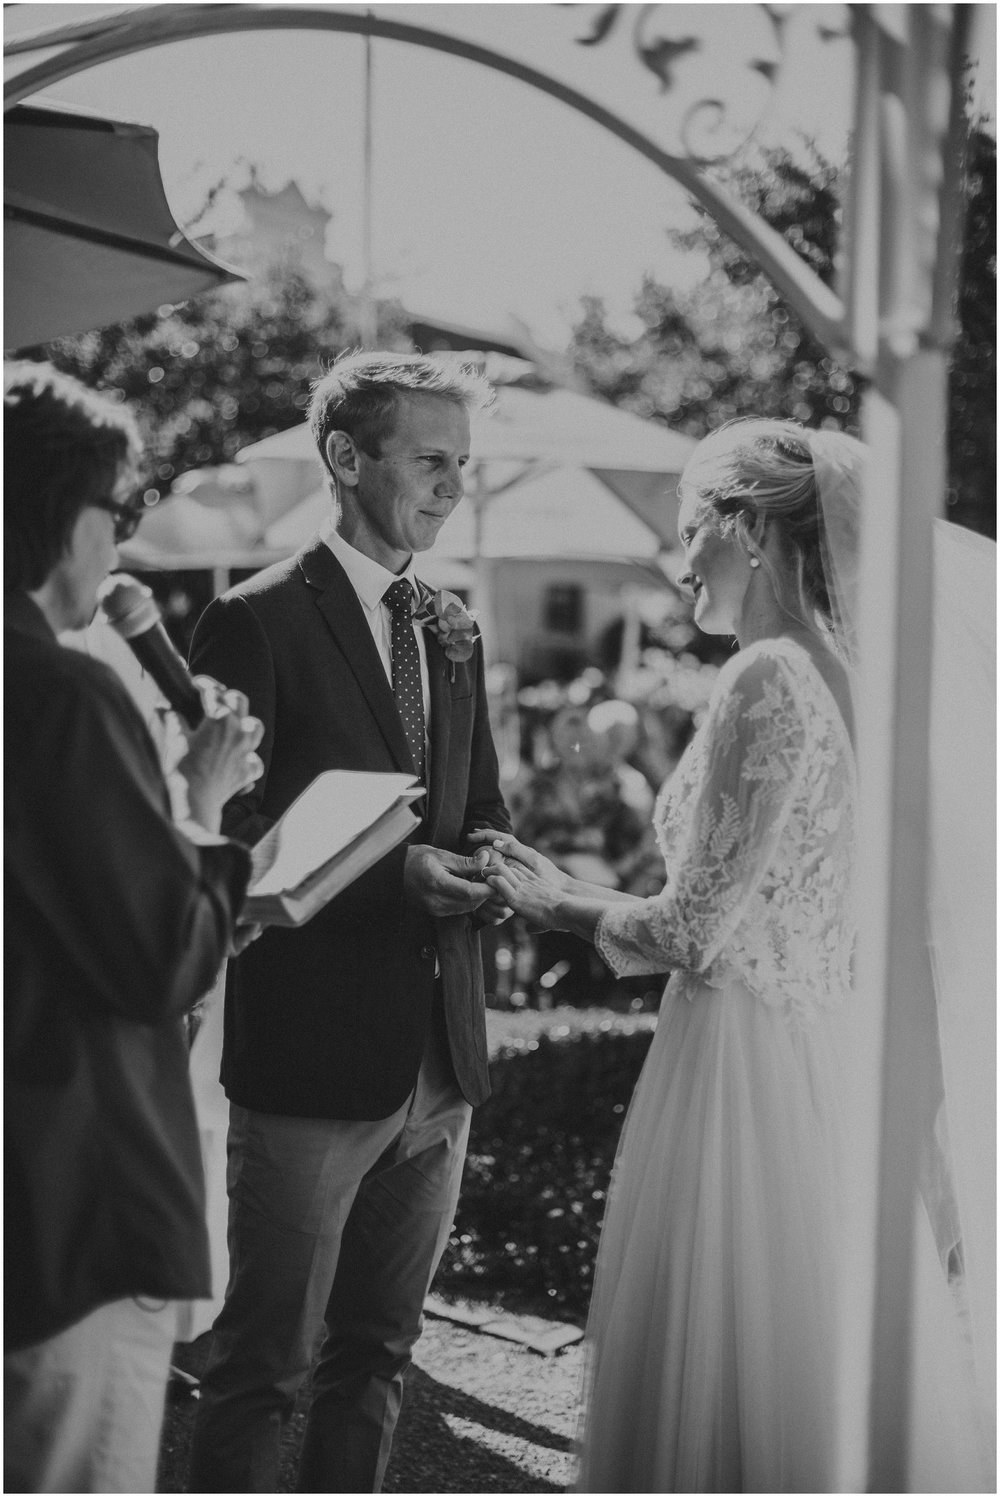 Top Wedding Photographer Cape Town South Africa Artistic Creative Documentary Wedding Photography Rue Kruger_0700.jpg